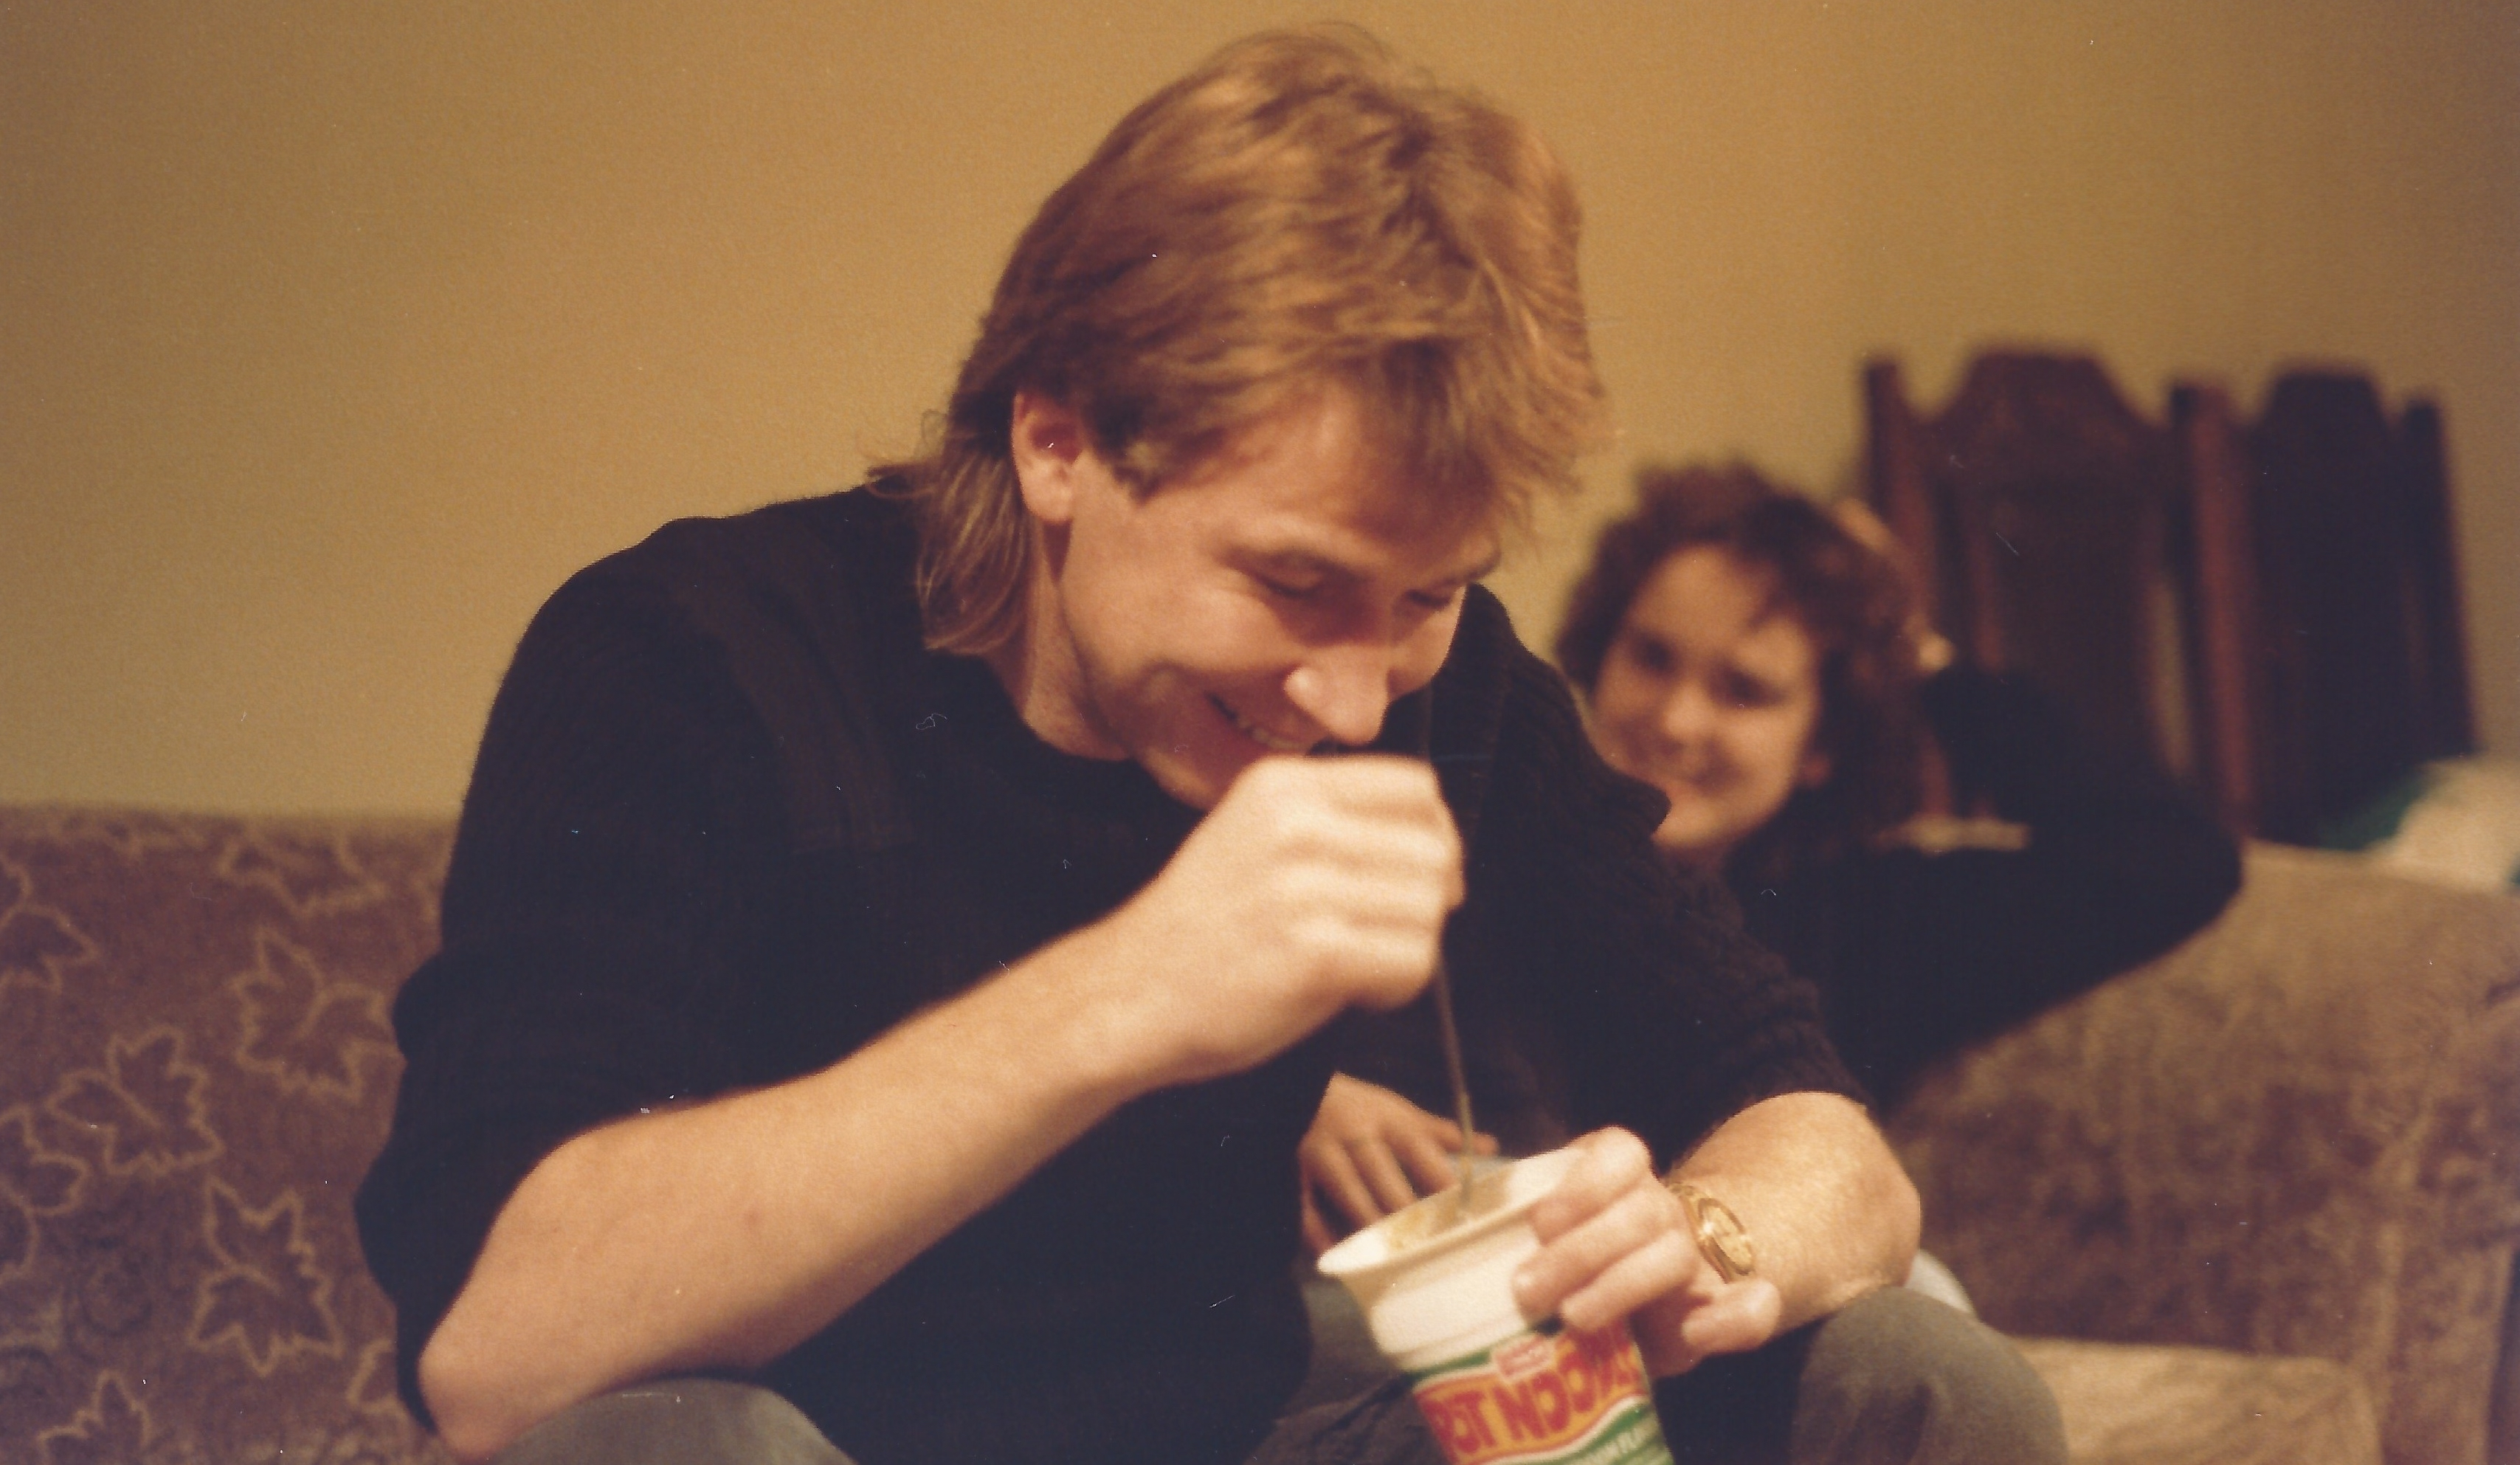 Vince Poynter sat, tucking in to a Pot Noodle, with a female friend in the background